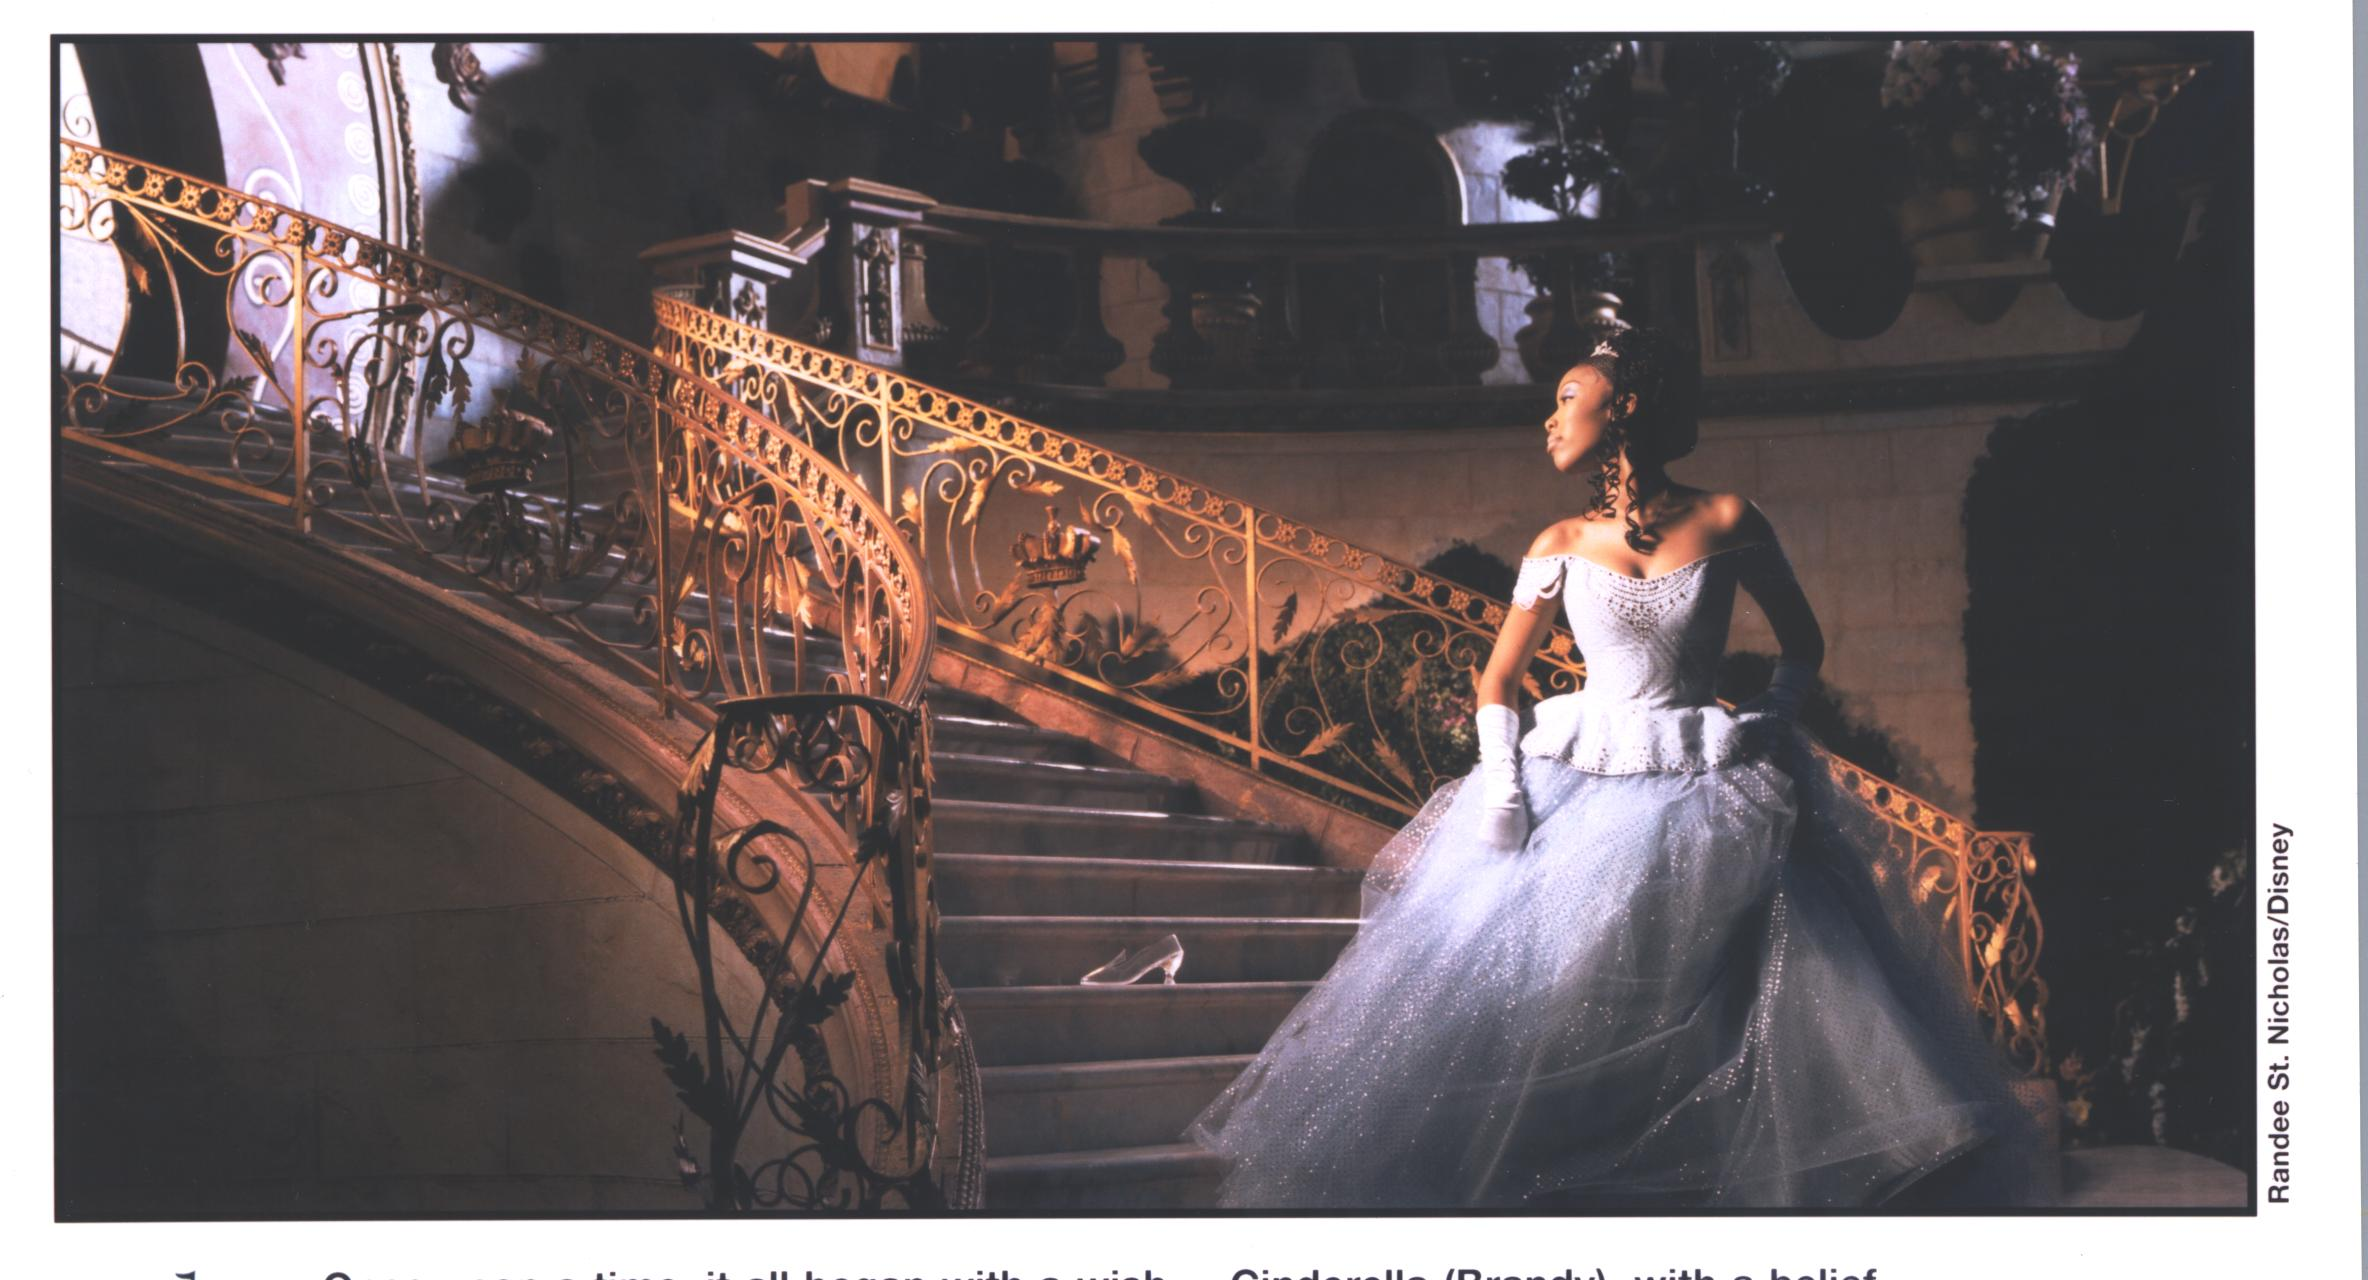 Cinderella - Brandy on stairs